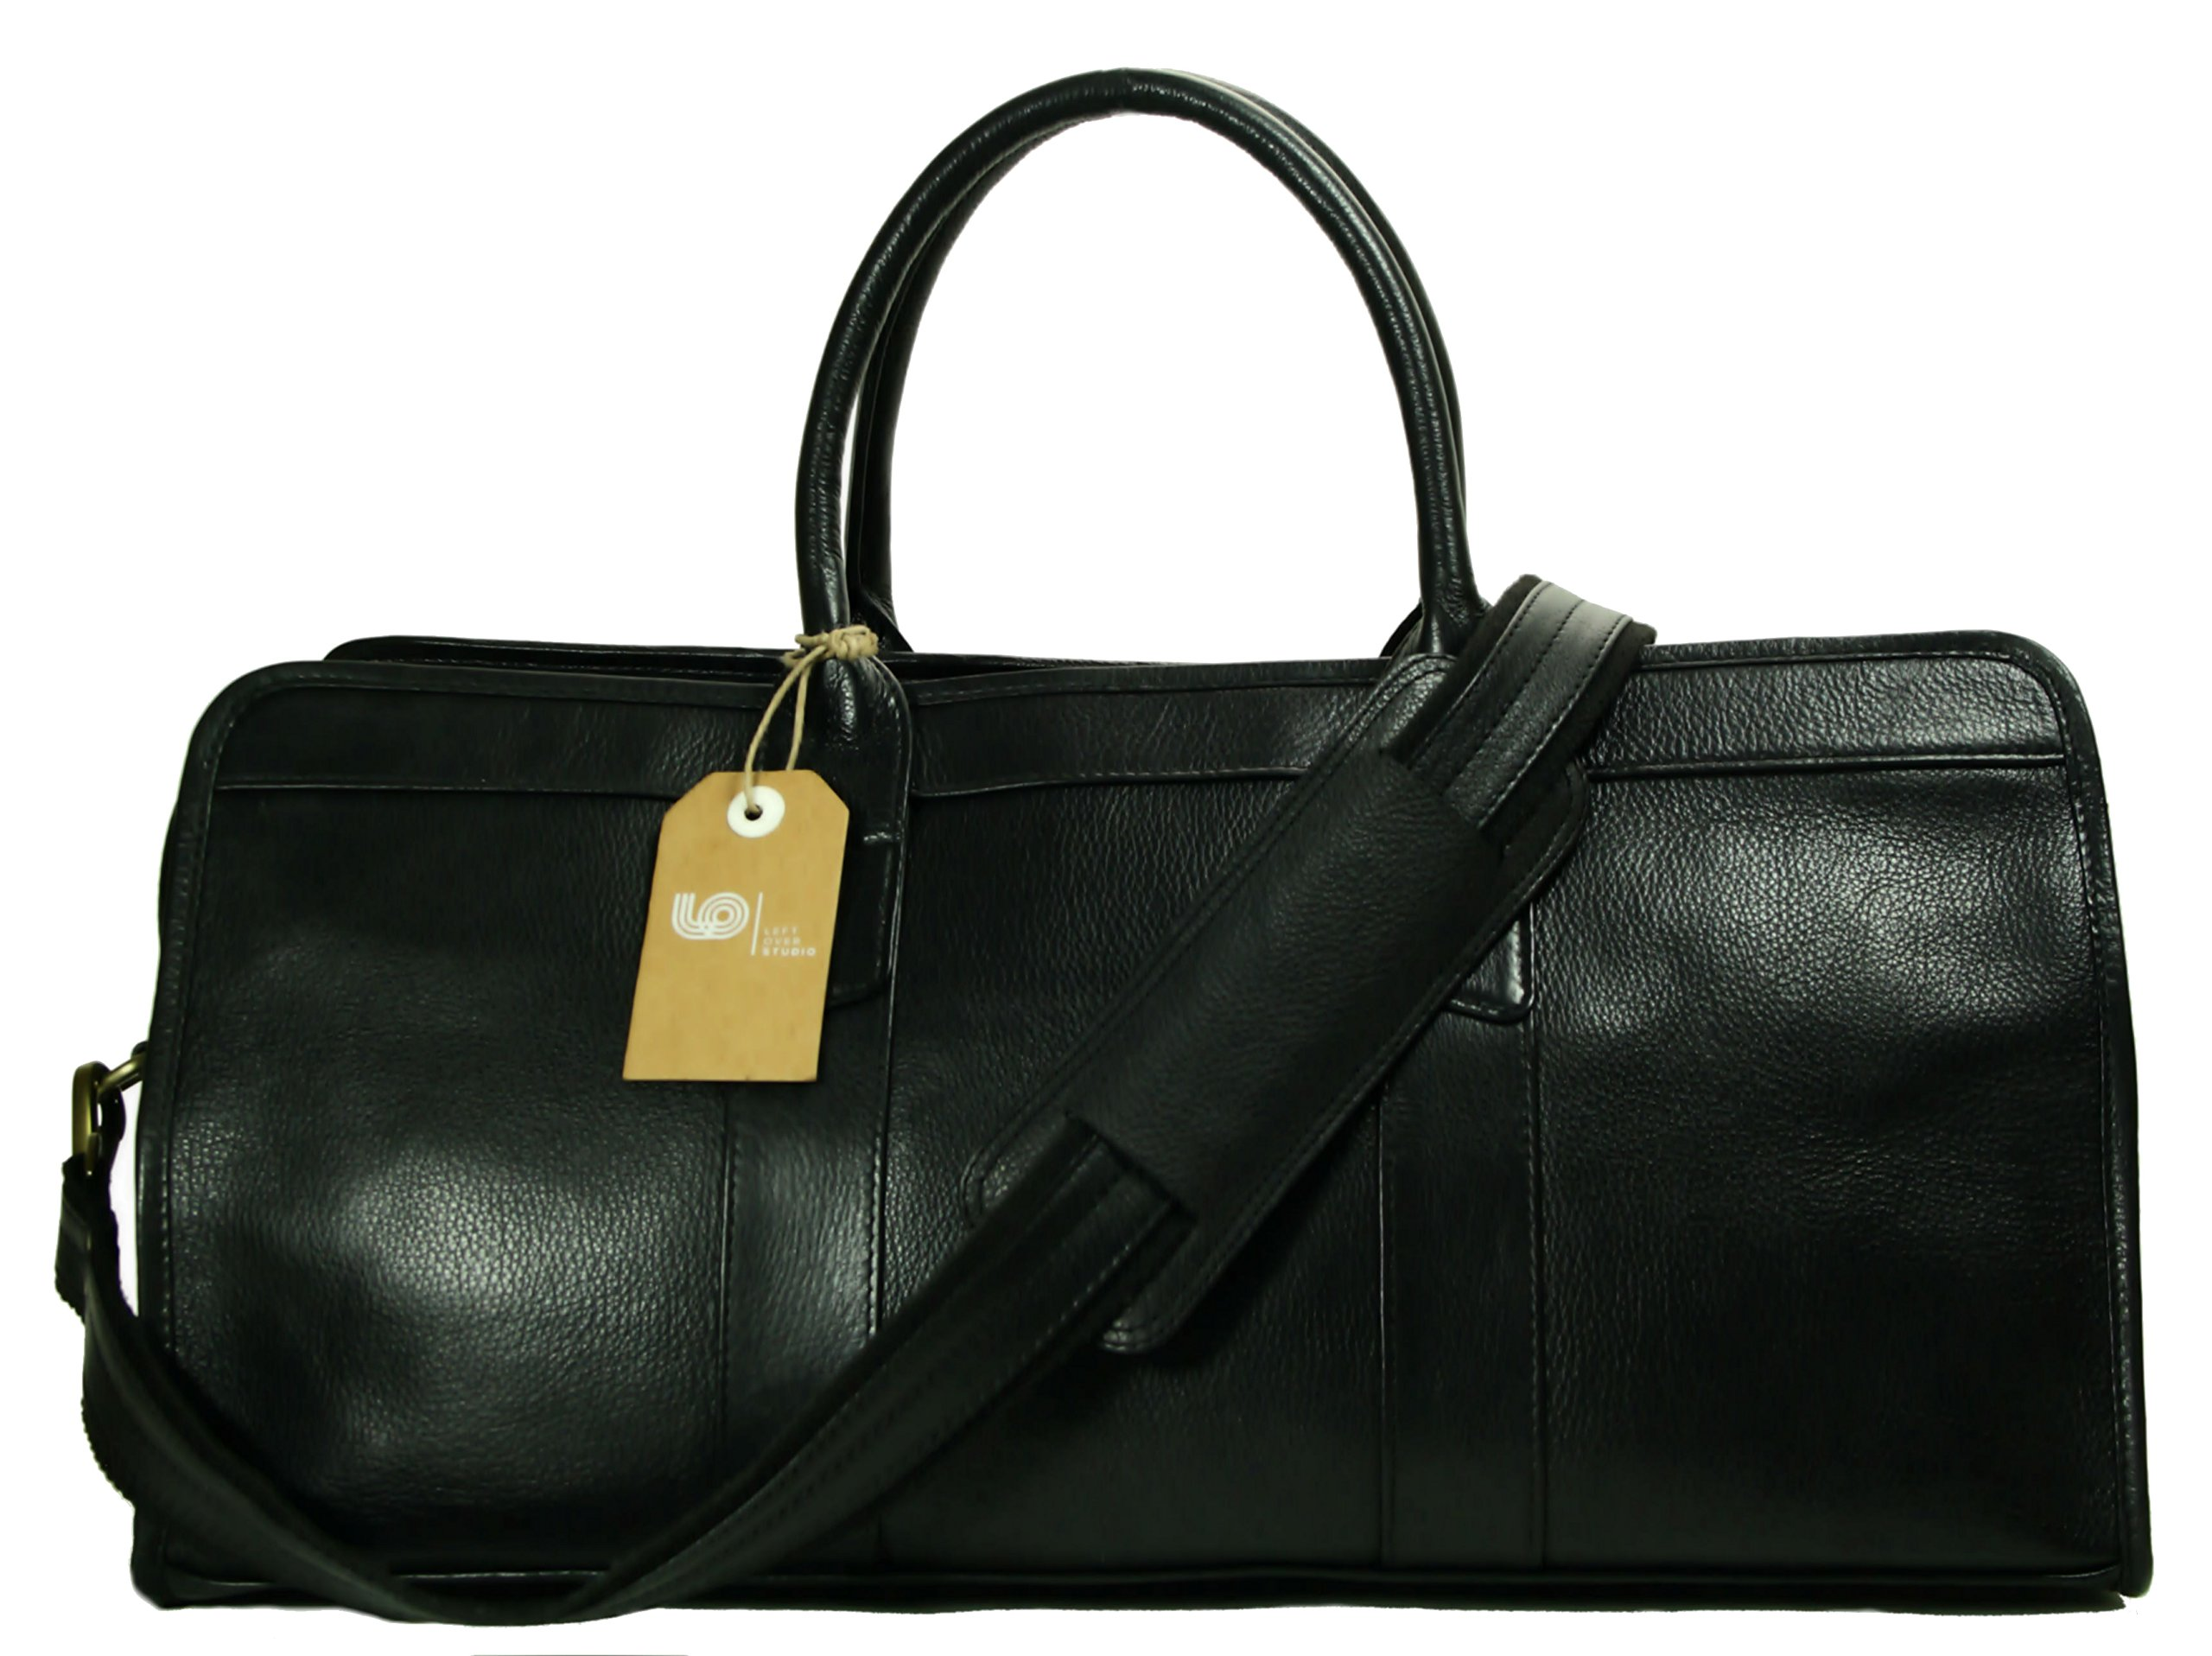 Top Grain Calf Leather 20'' Weekender Overnight Travel Duffel in Black by Leftover Studio